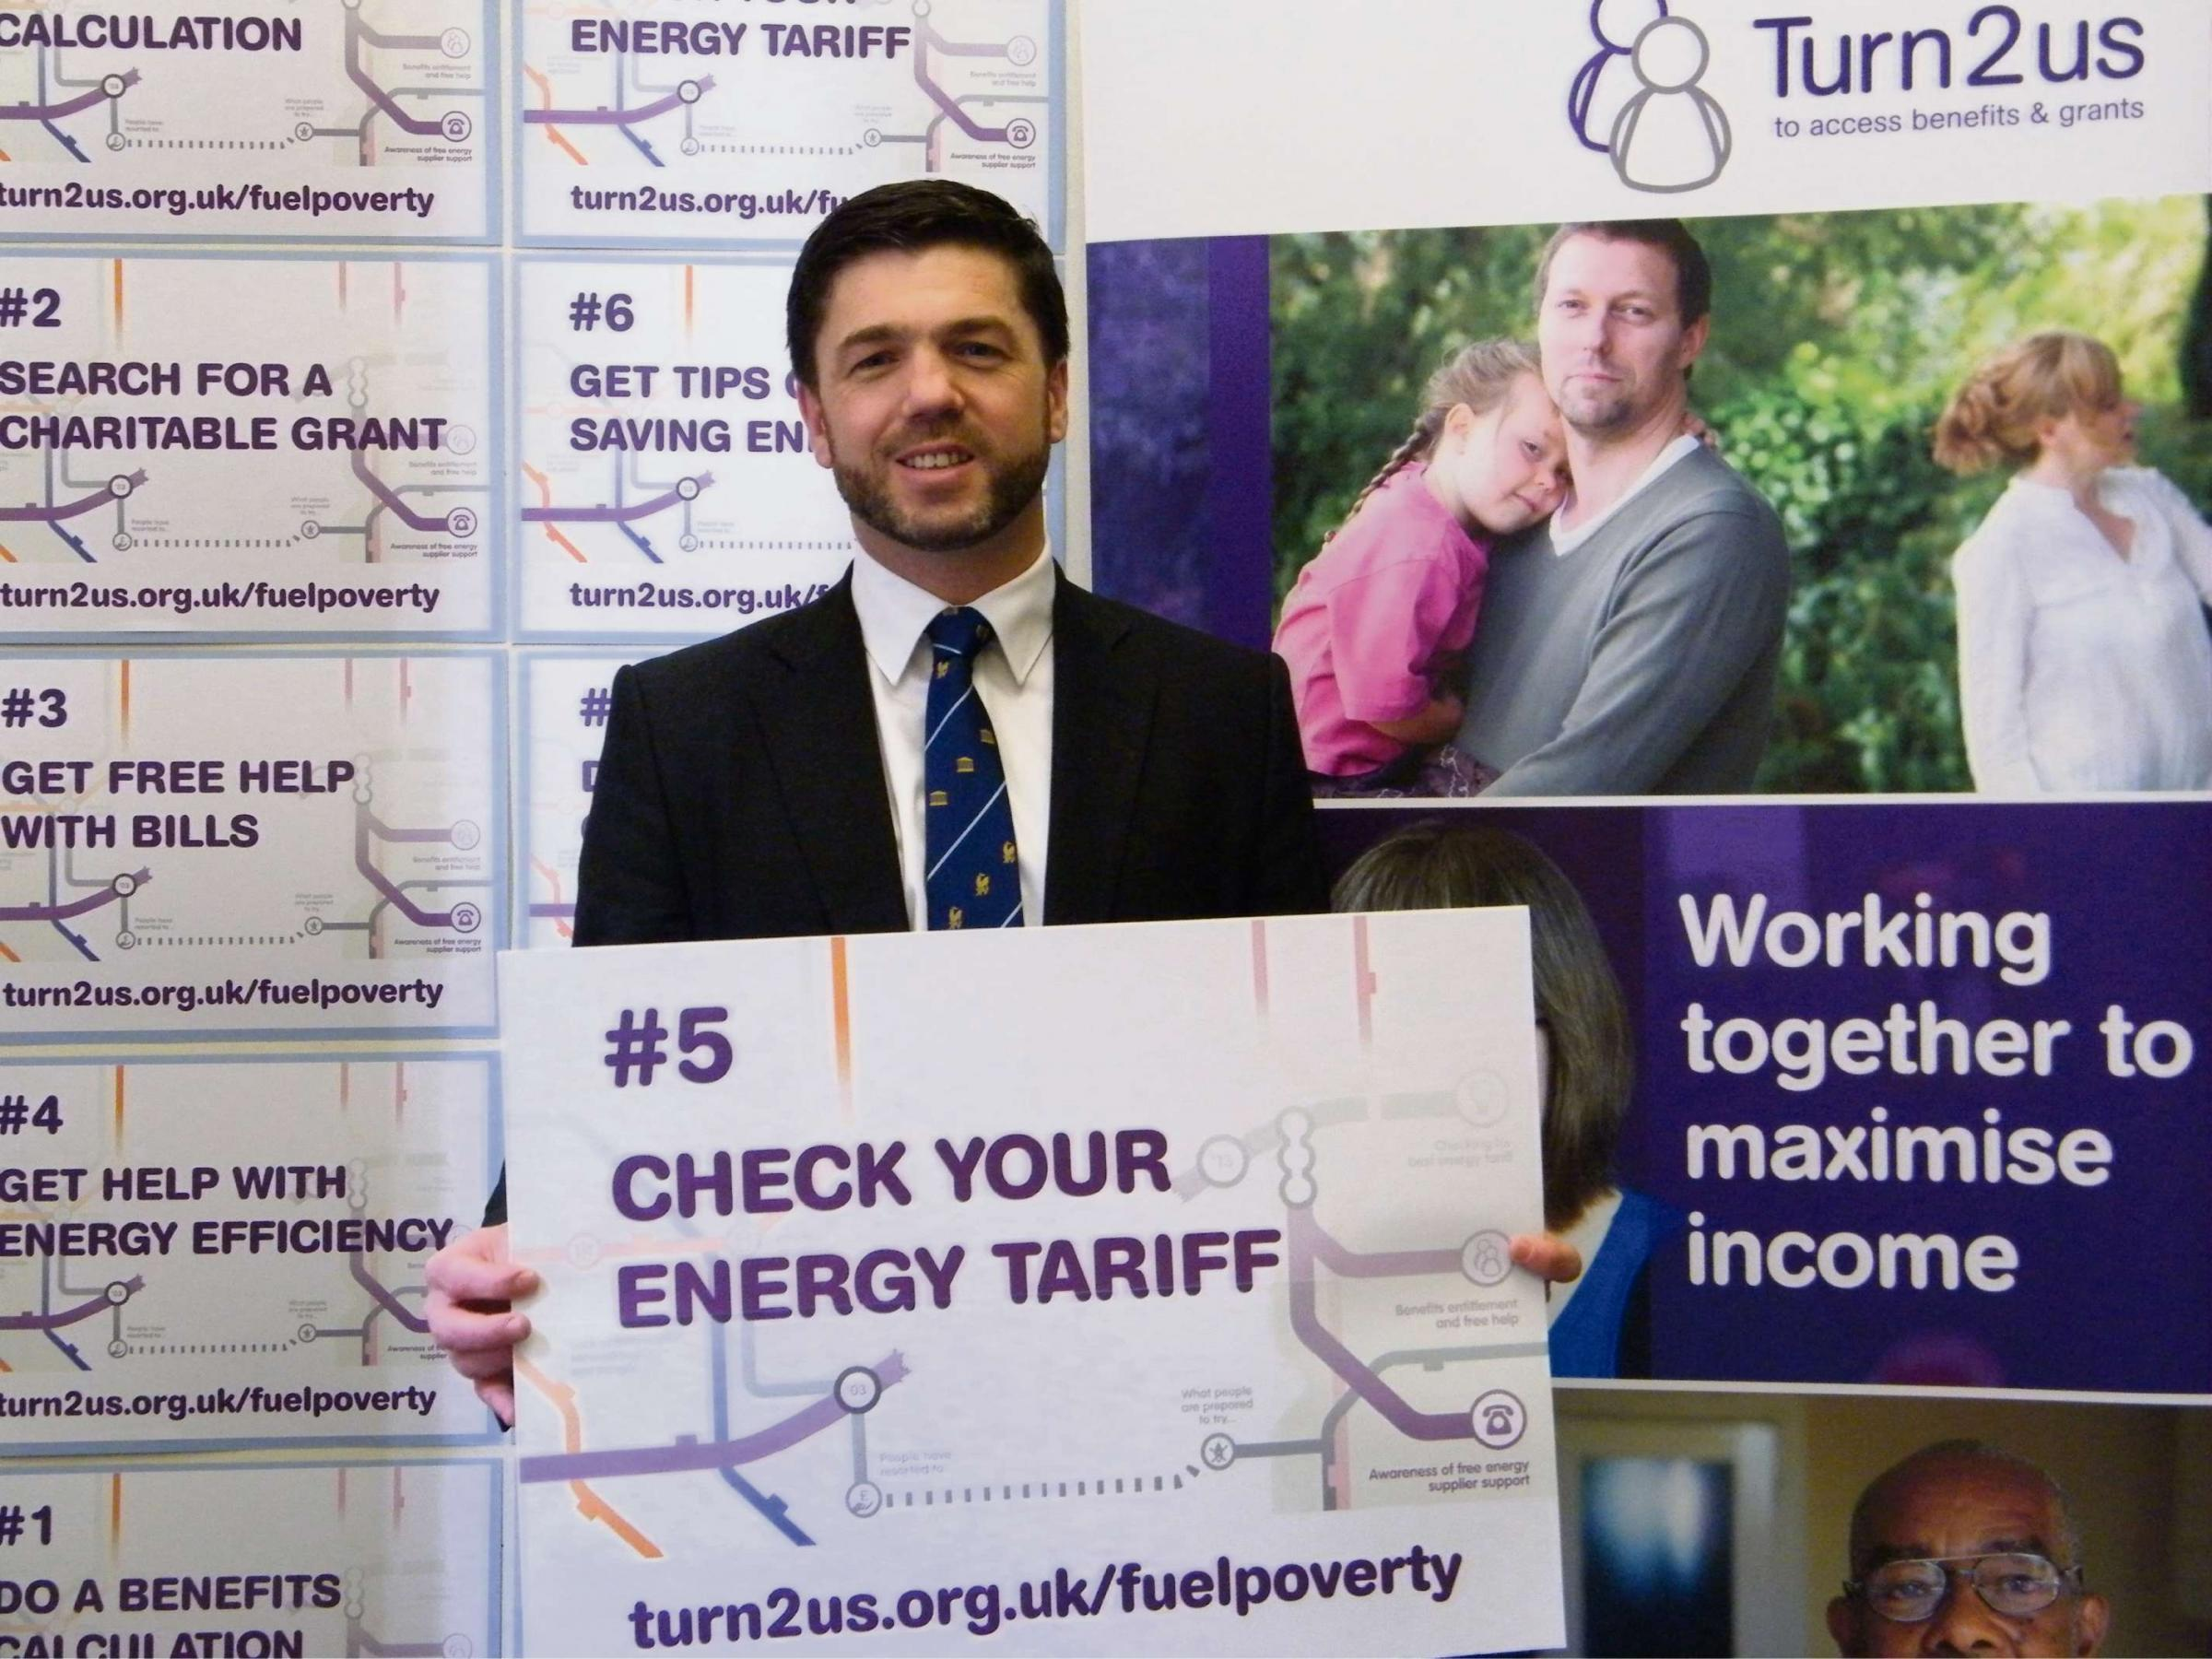 ACT NOW: Stephen Crabb MP is backing Mind the Gap, a campaign run by national charity Turn2us.